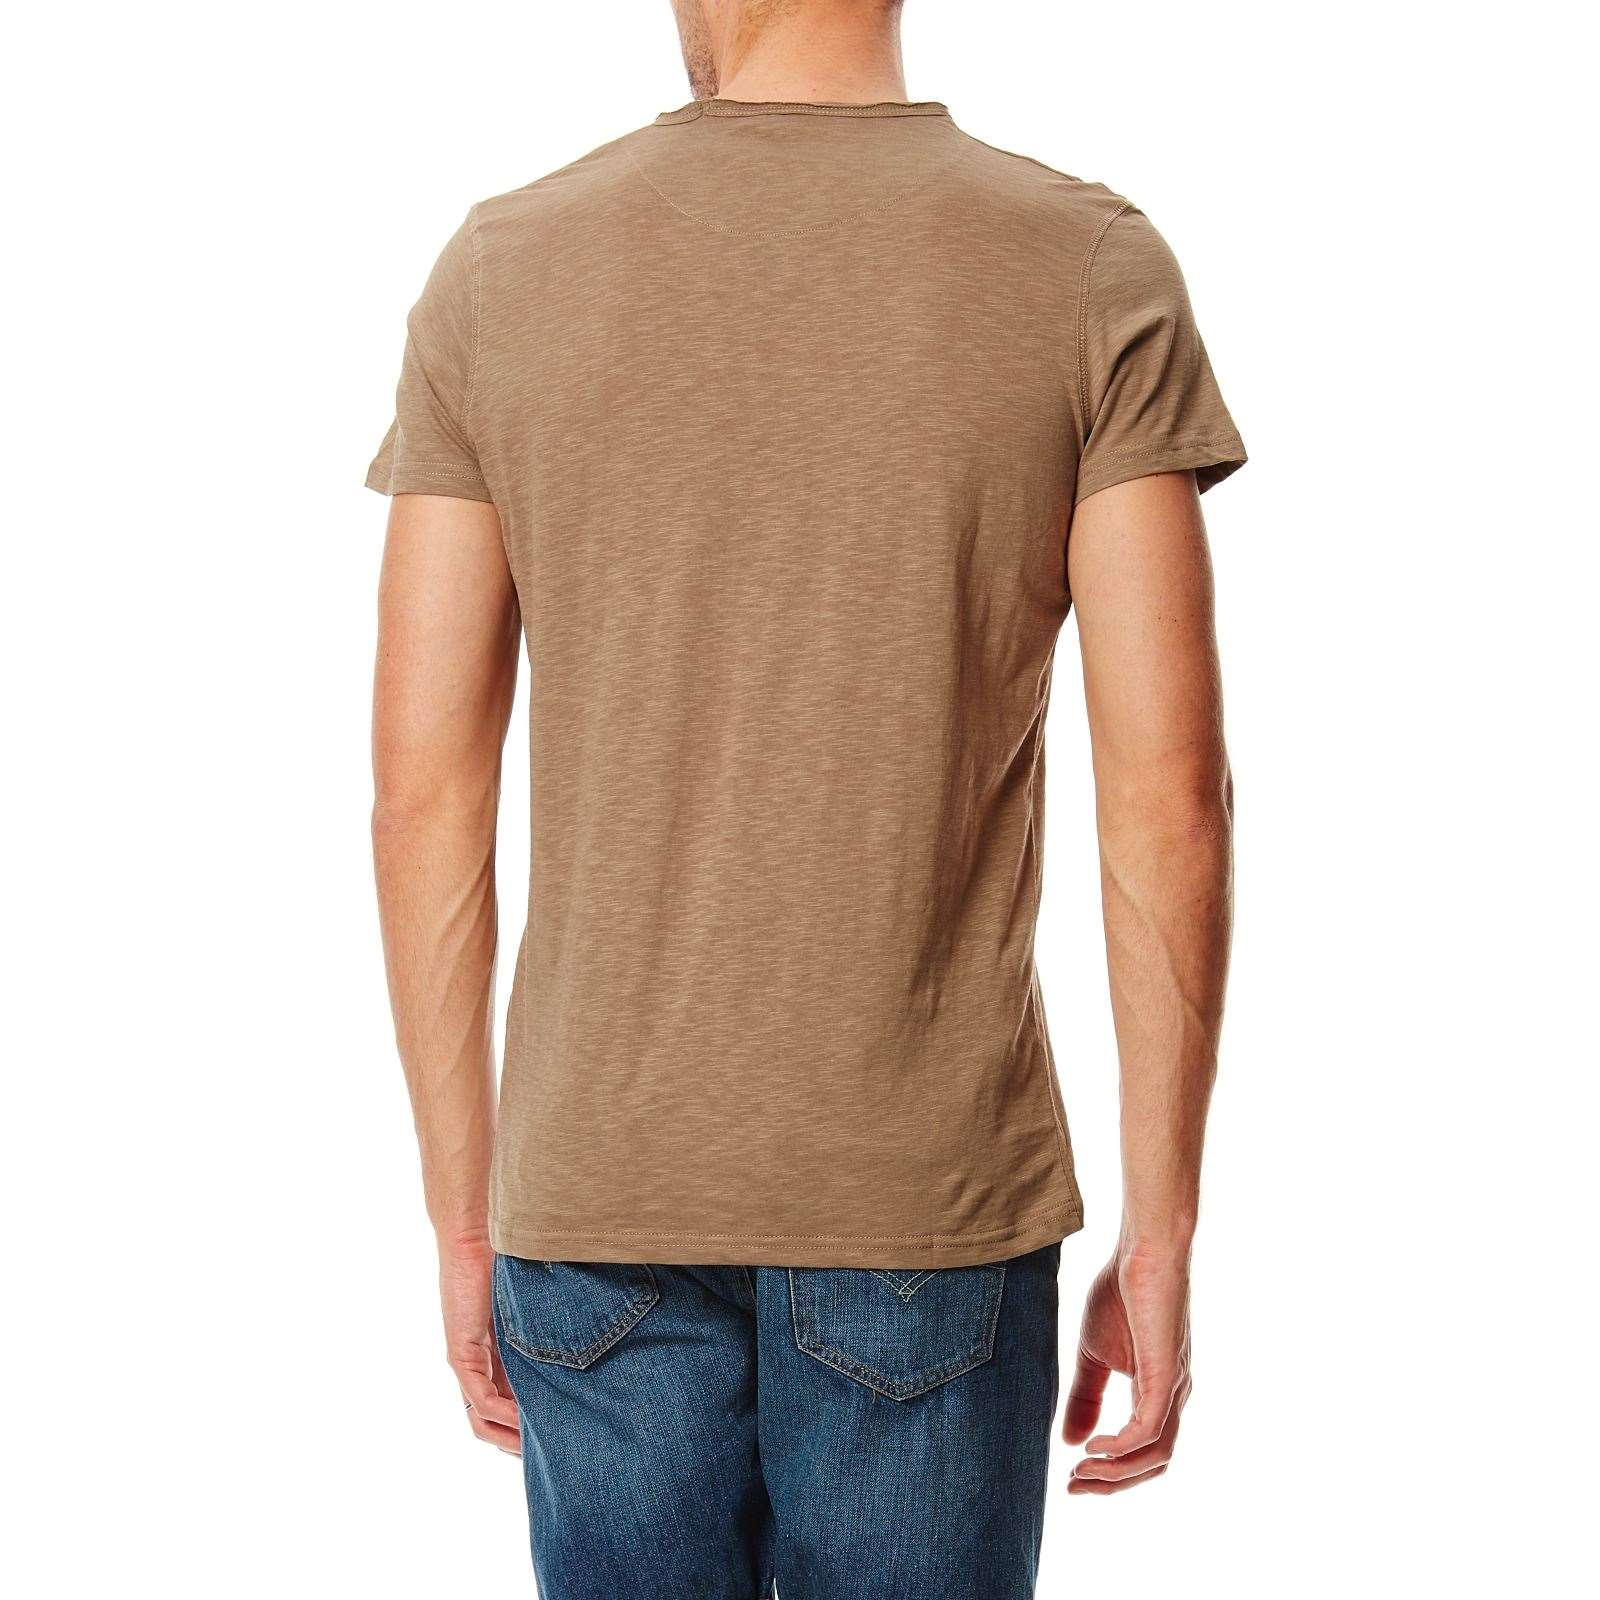 Best-Mountain-T-shirt-manches-courtes-army